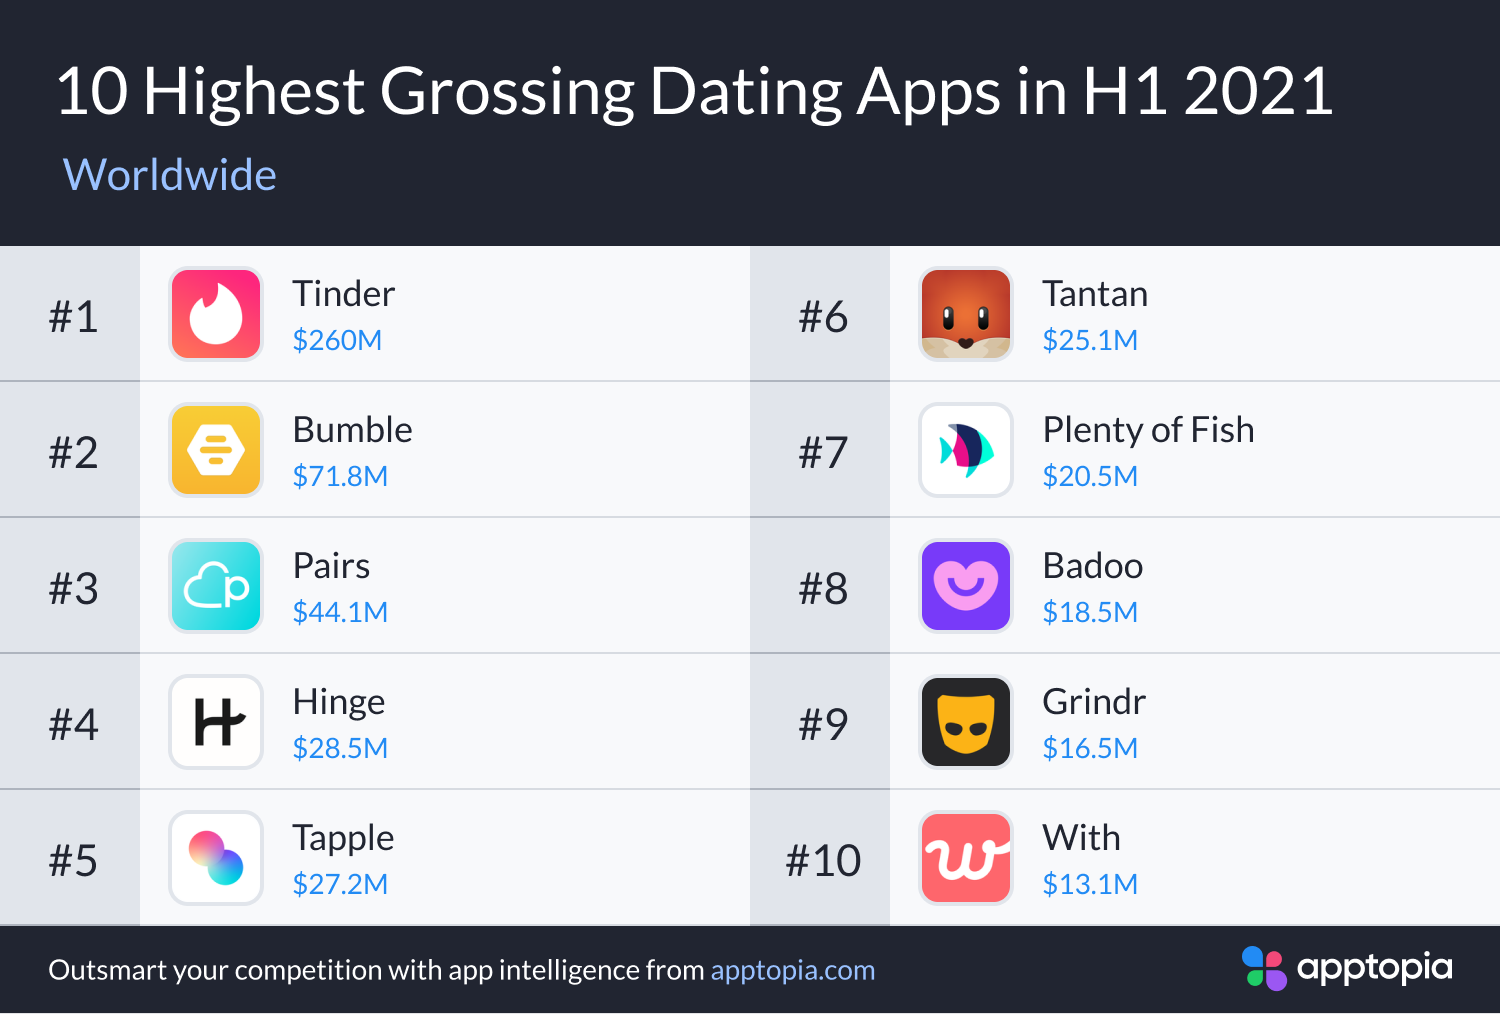 highest grossing dating apps H1 2021